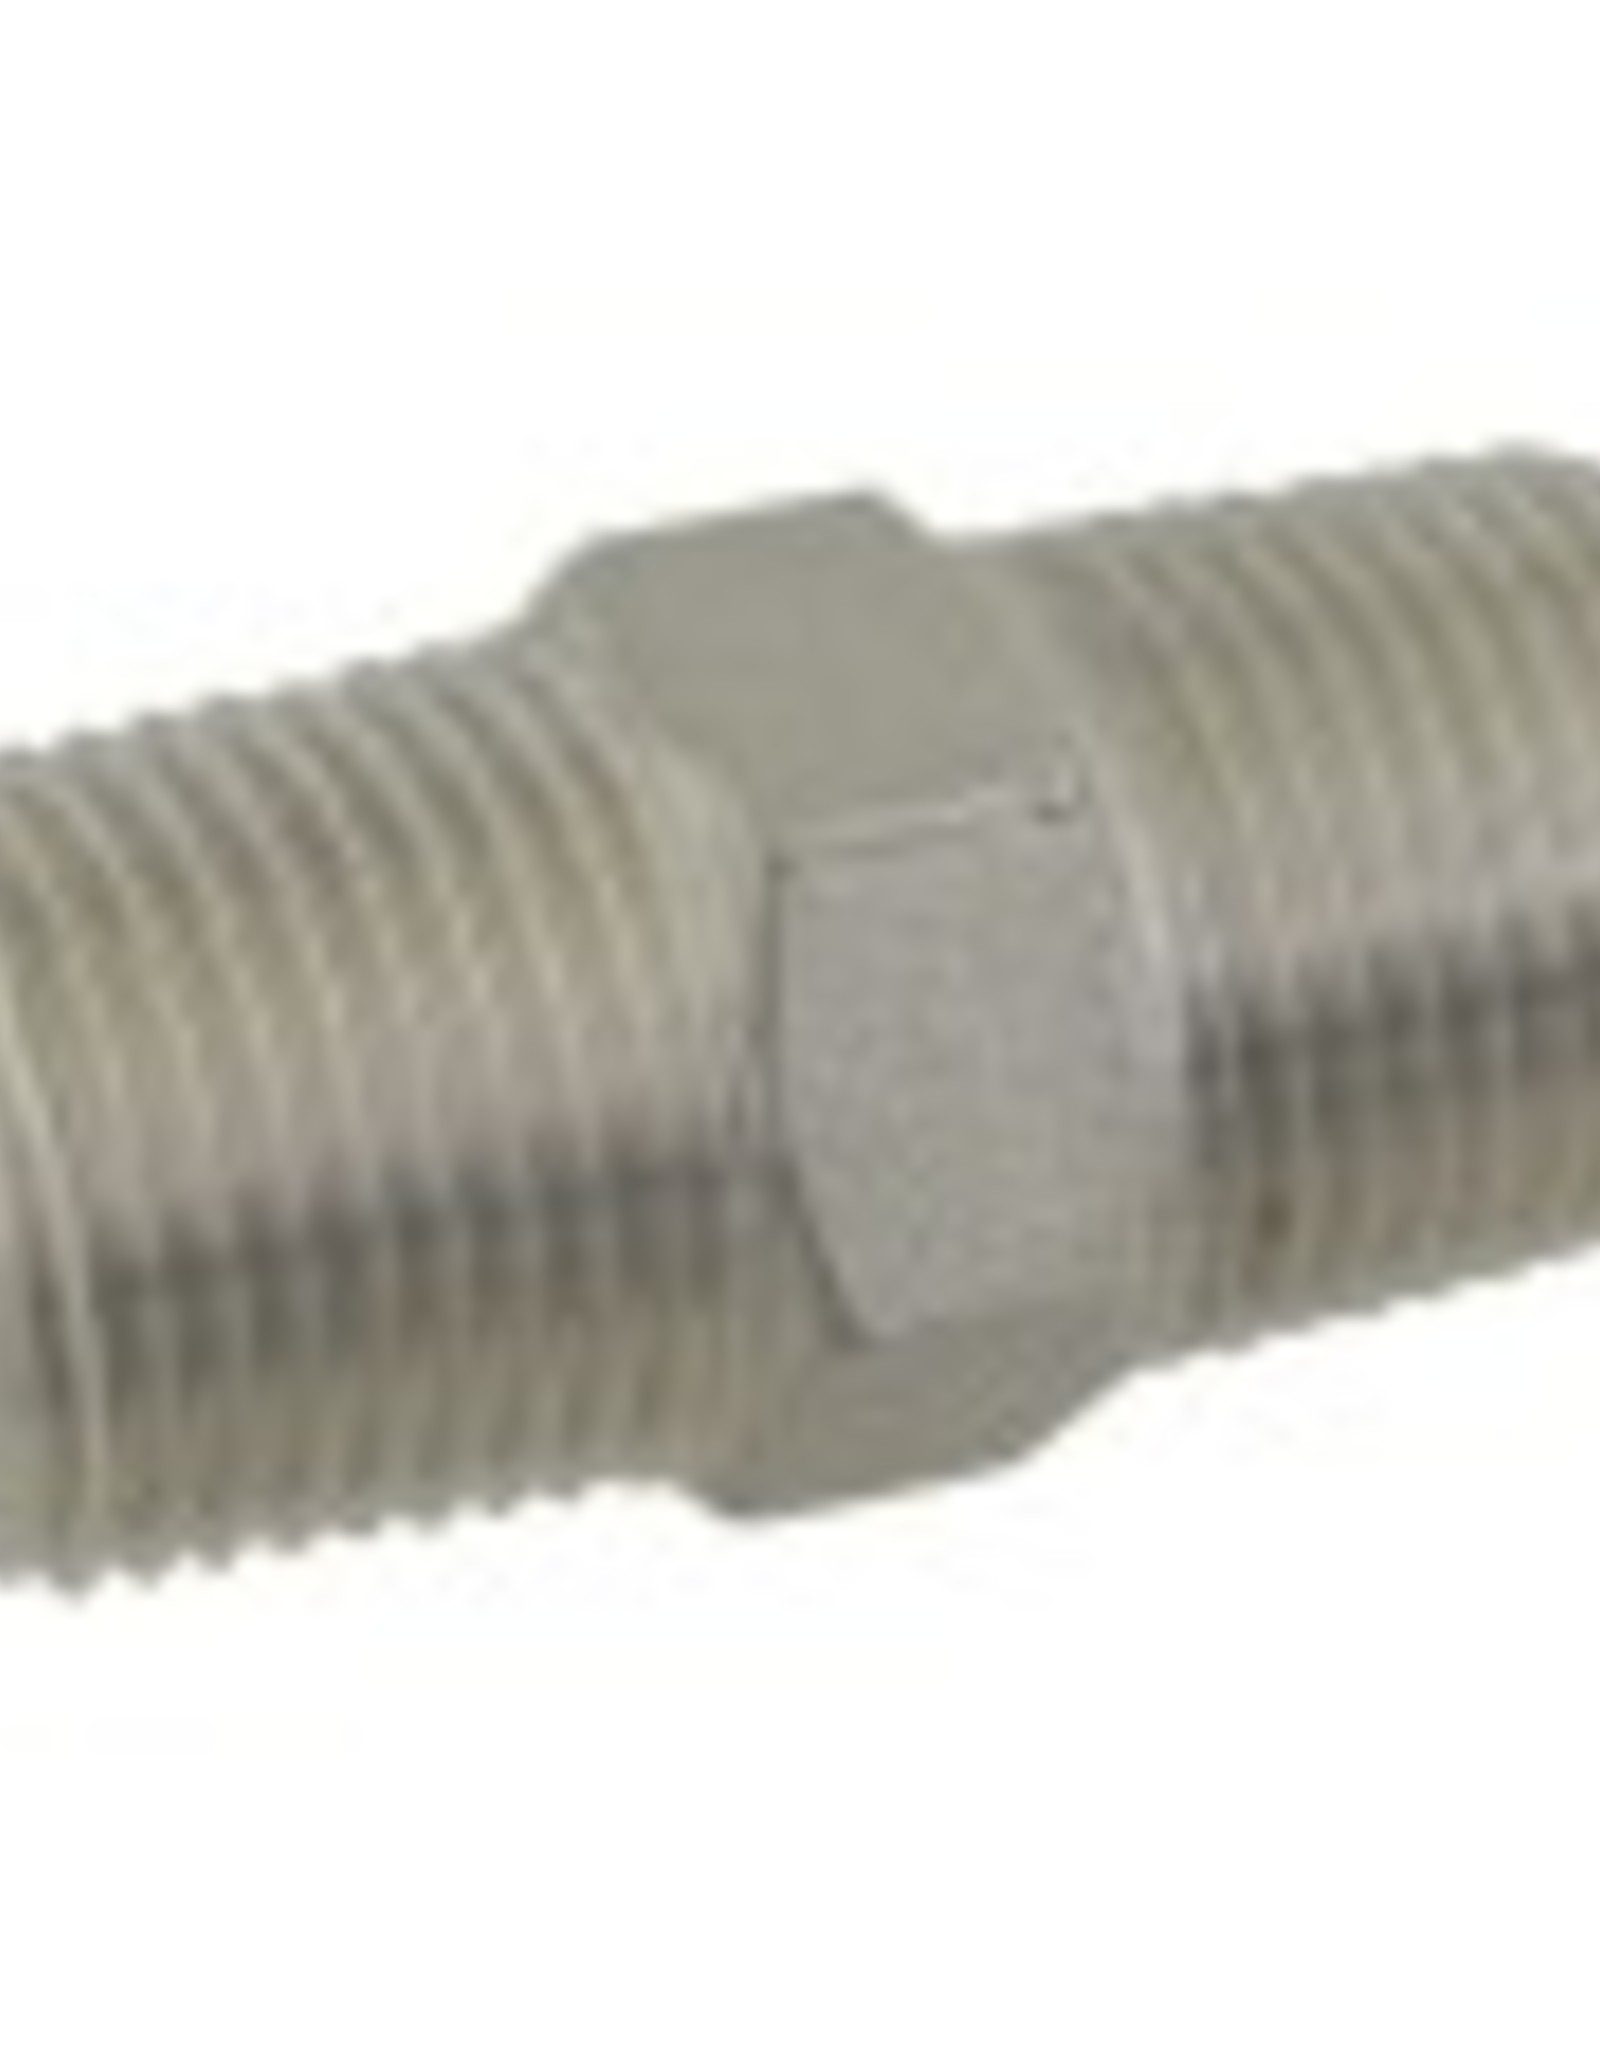 Stainless Hex Nipple - 1/2 in. x 1 3/4 in. Threaded